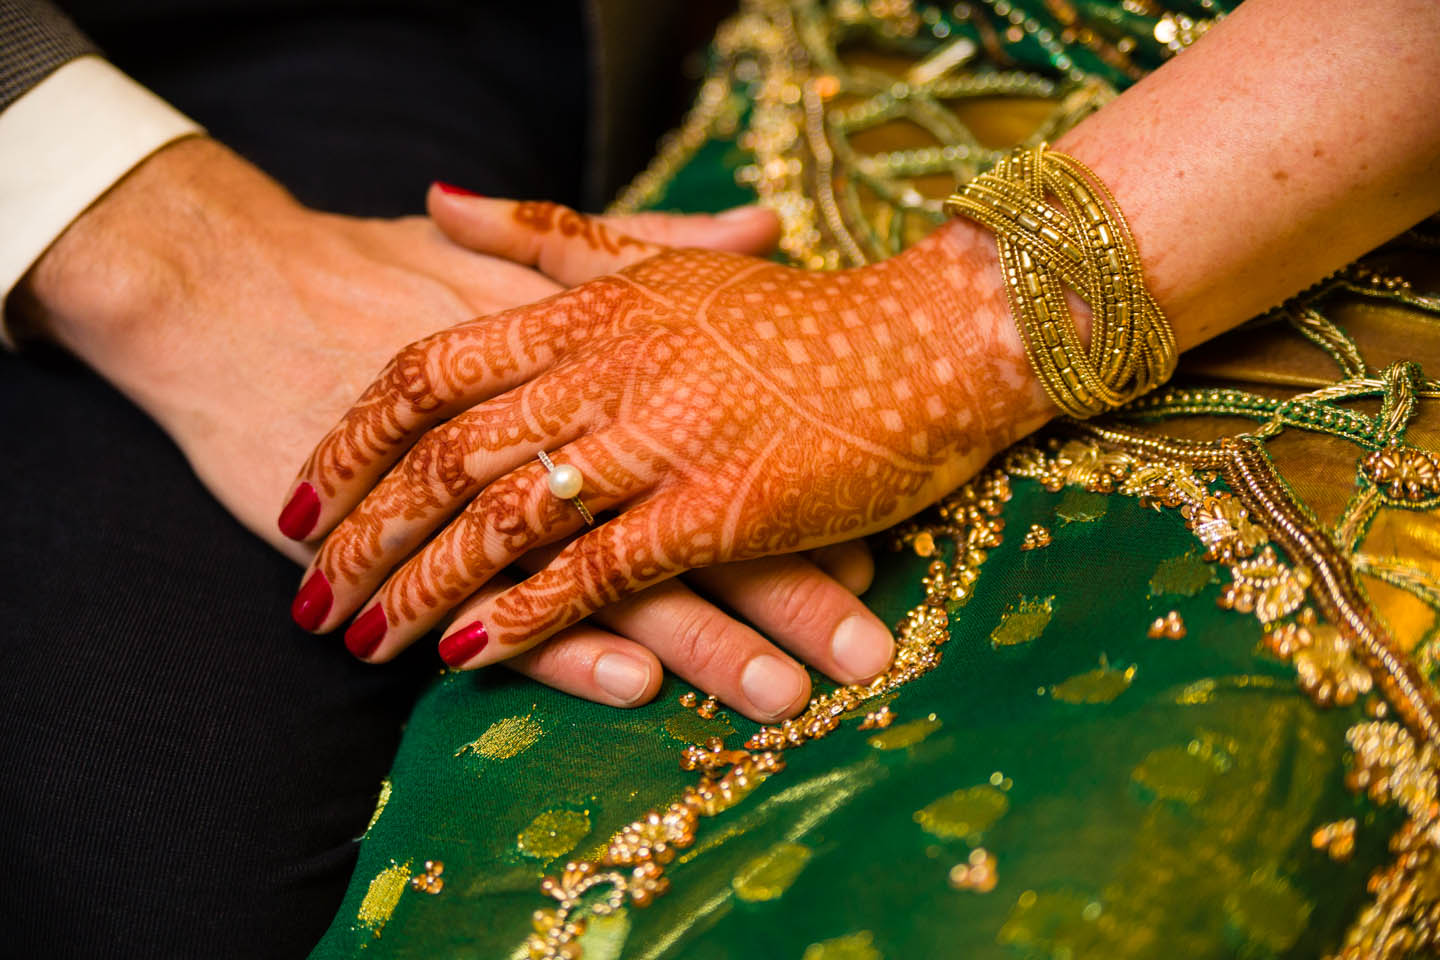 Mehndi Hands With Engagement Ring : Indian style wedding hosted at trolley square in slc dav